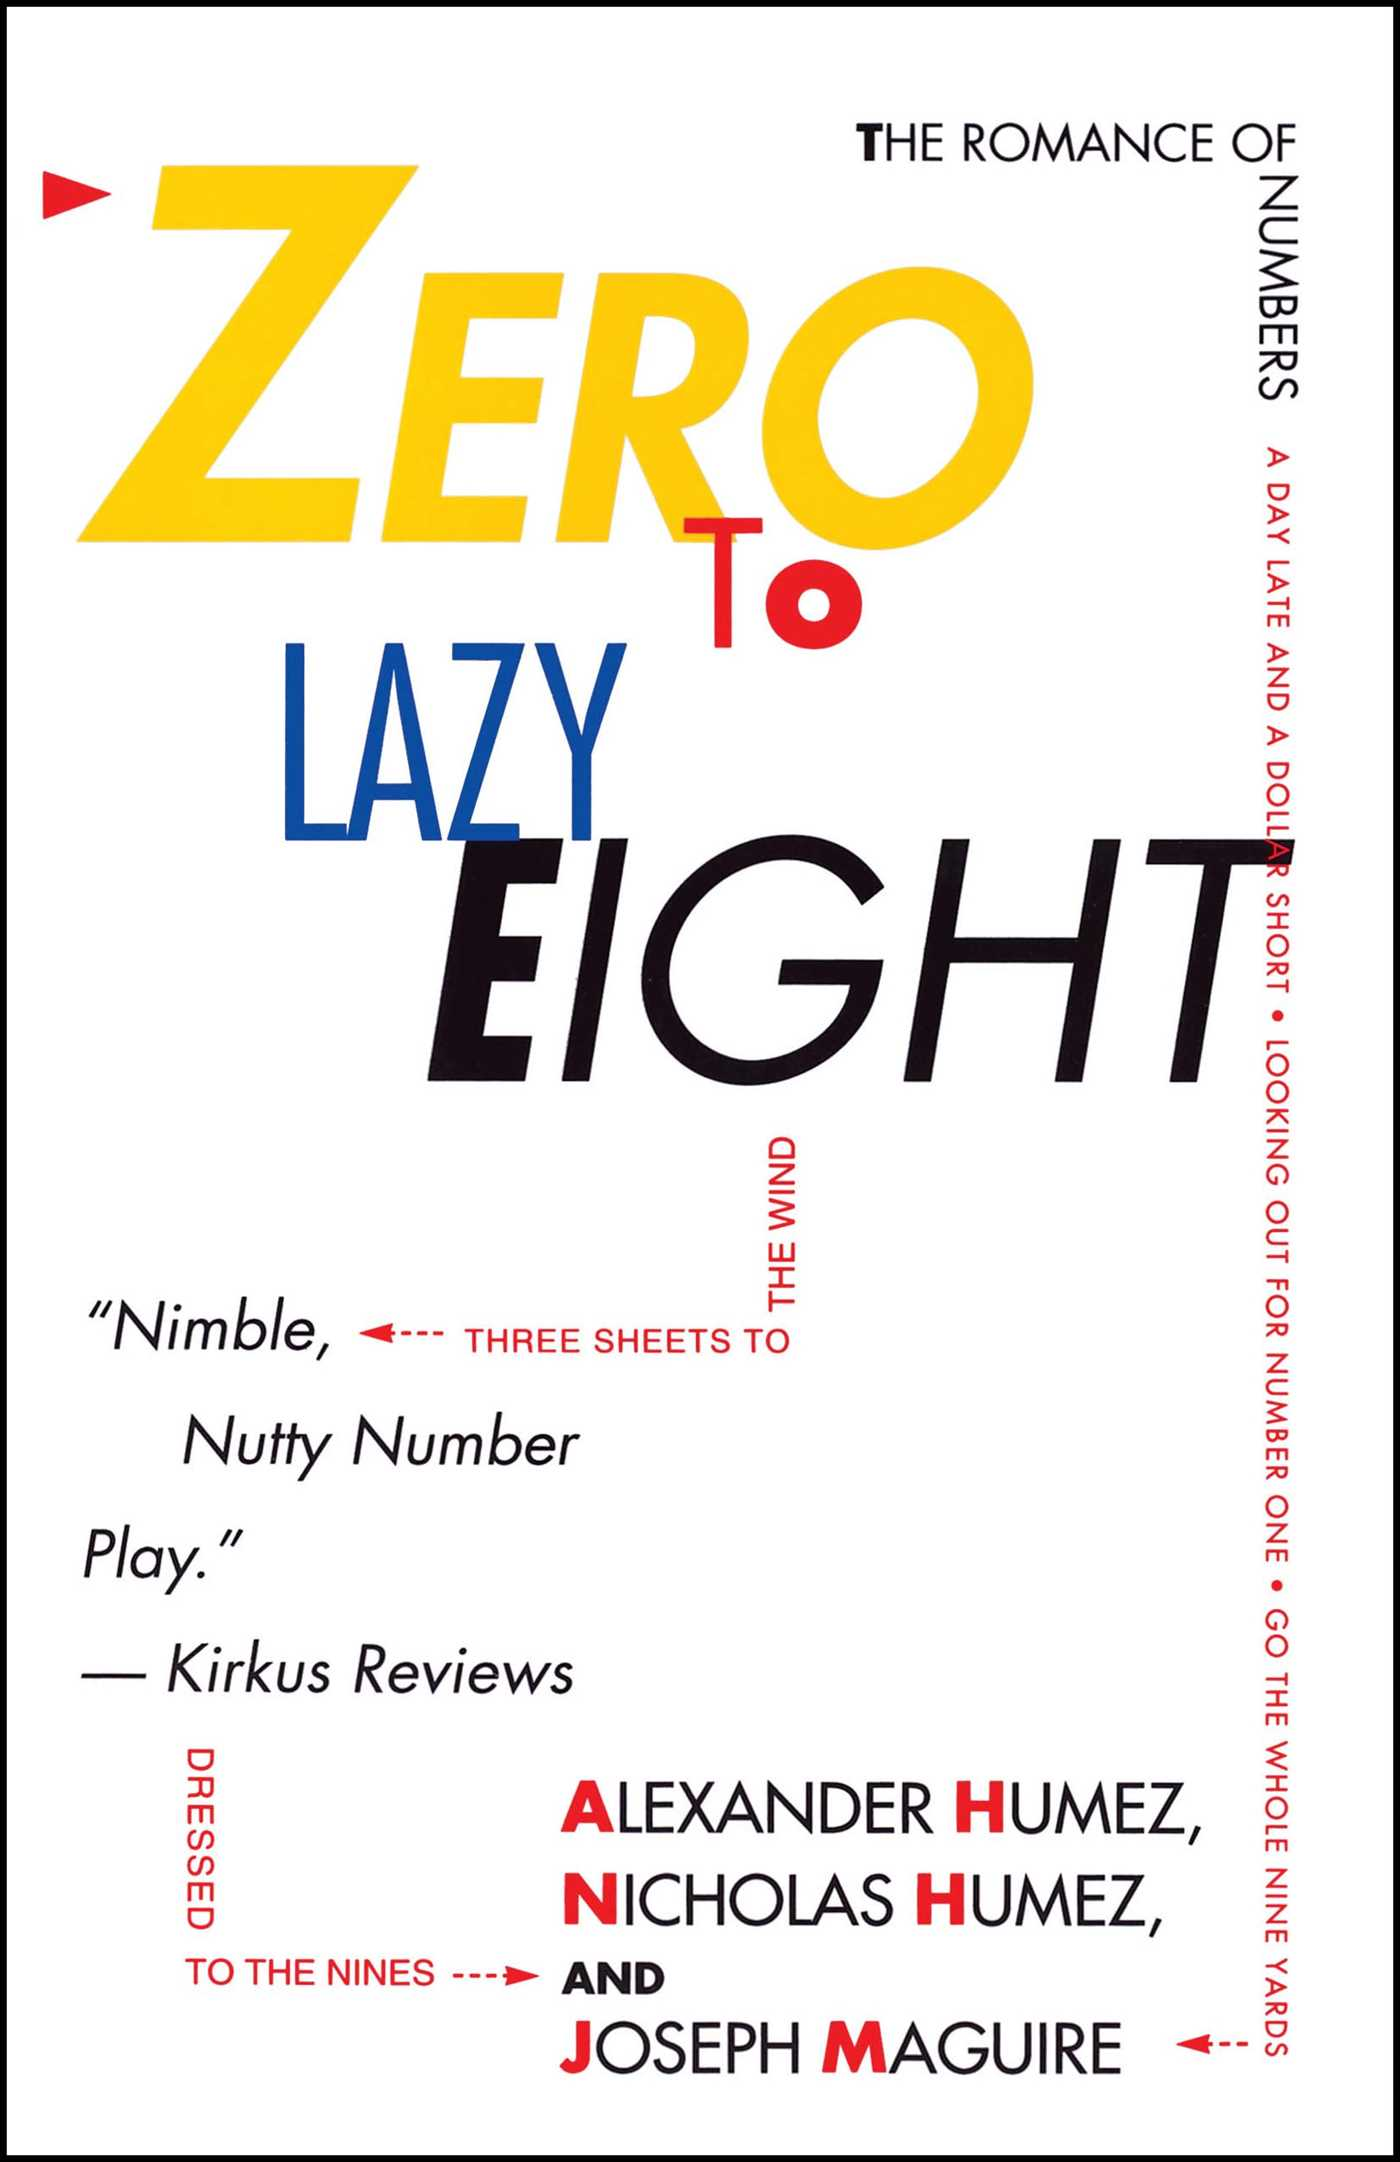 Zero to lazy eight 9780671742812 hr